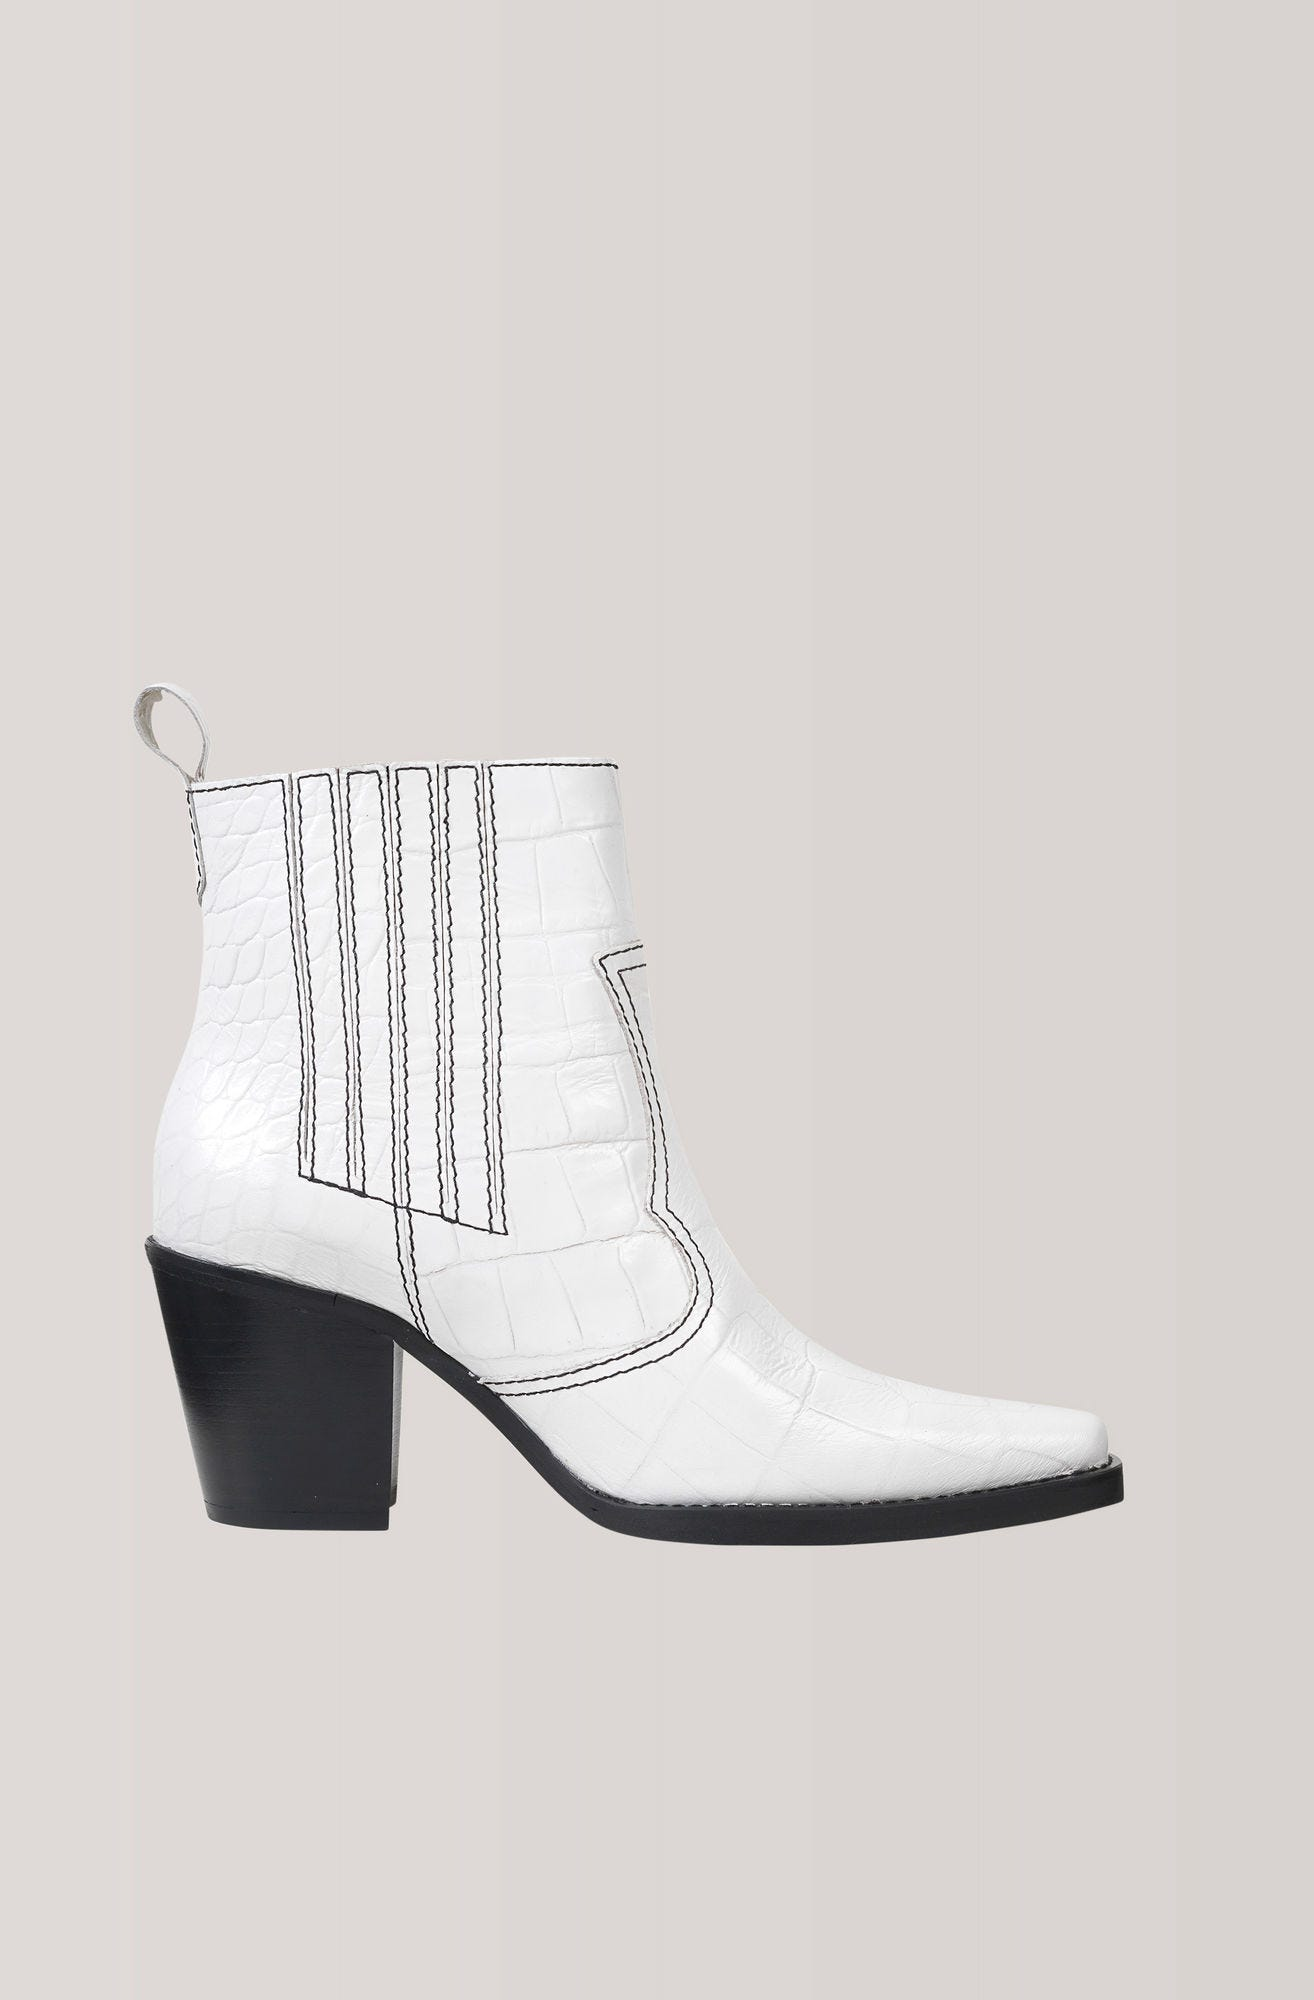 9919af42d63 White Boot Trend Fall 2018 For Women